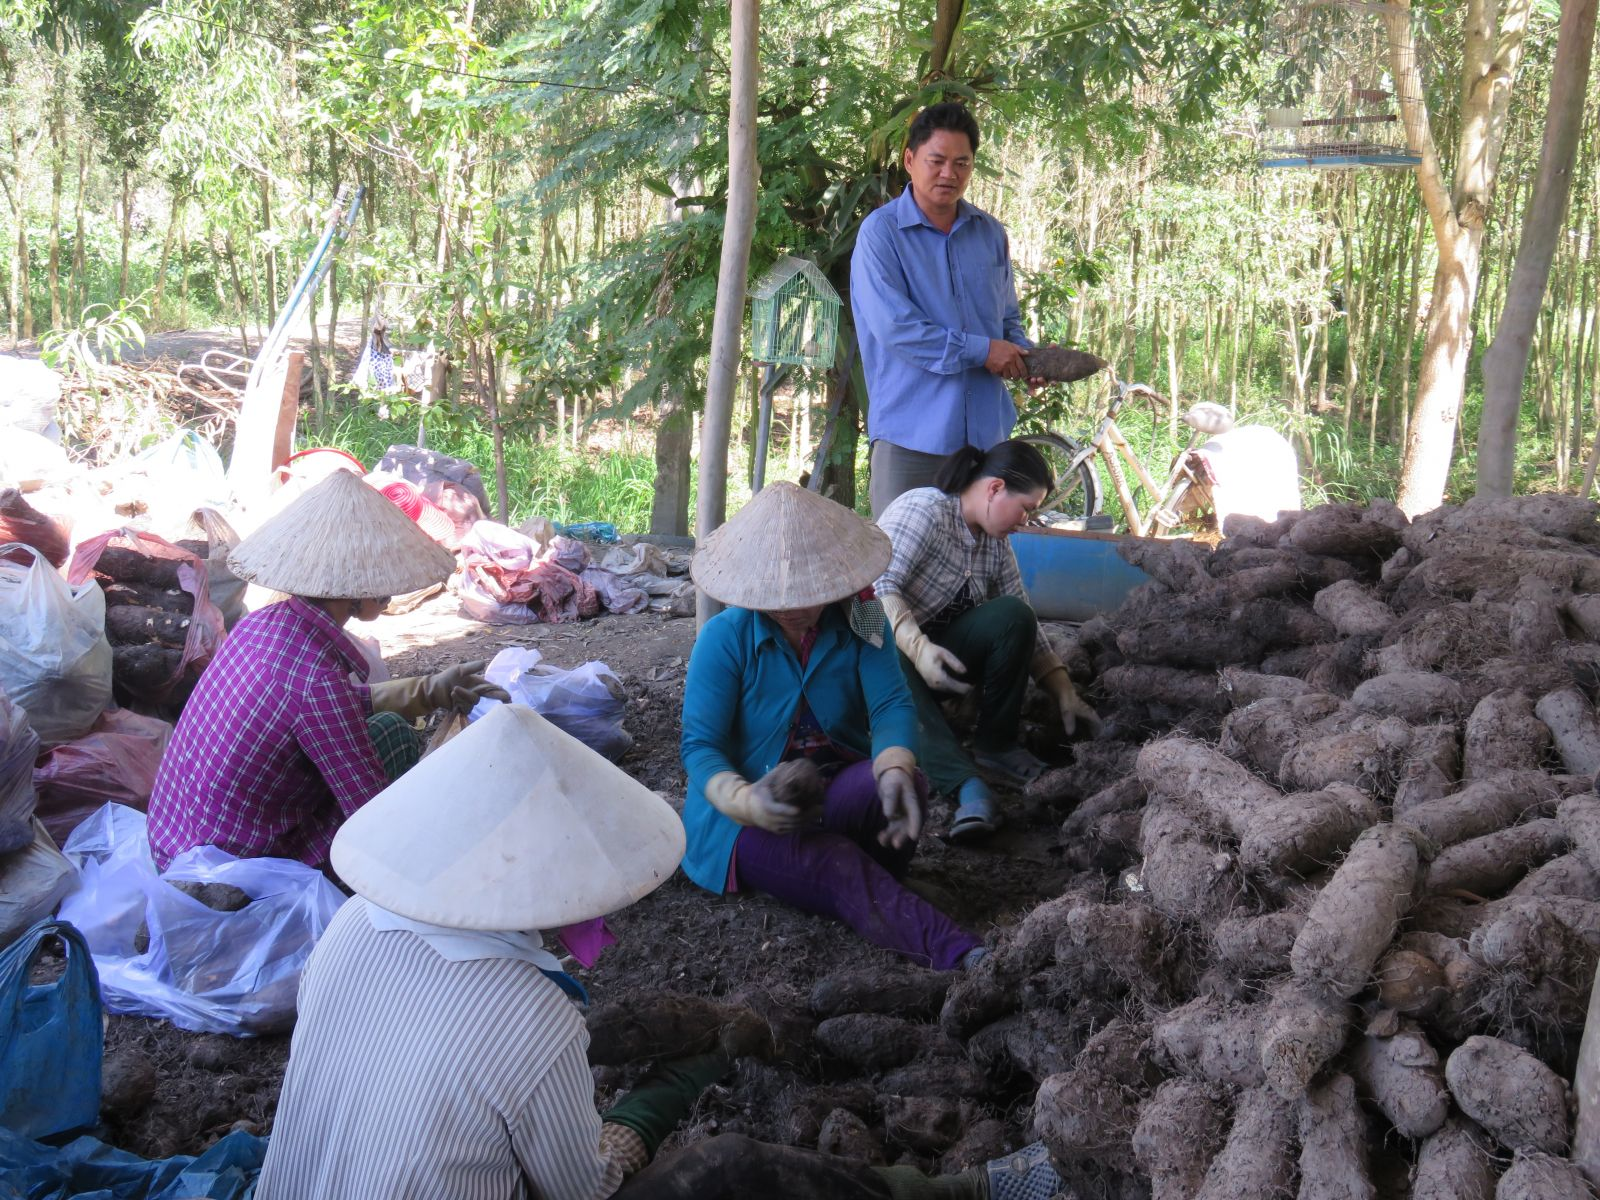 Yams are preliminarily processed and sold to the market (Illustrated Photo)